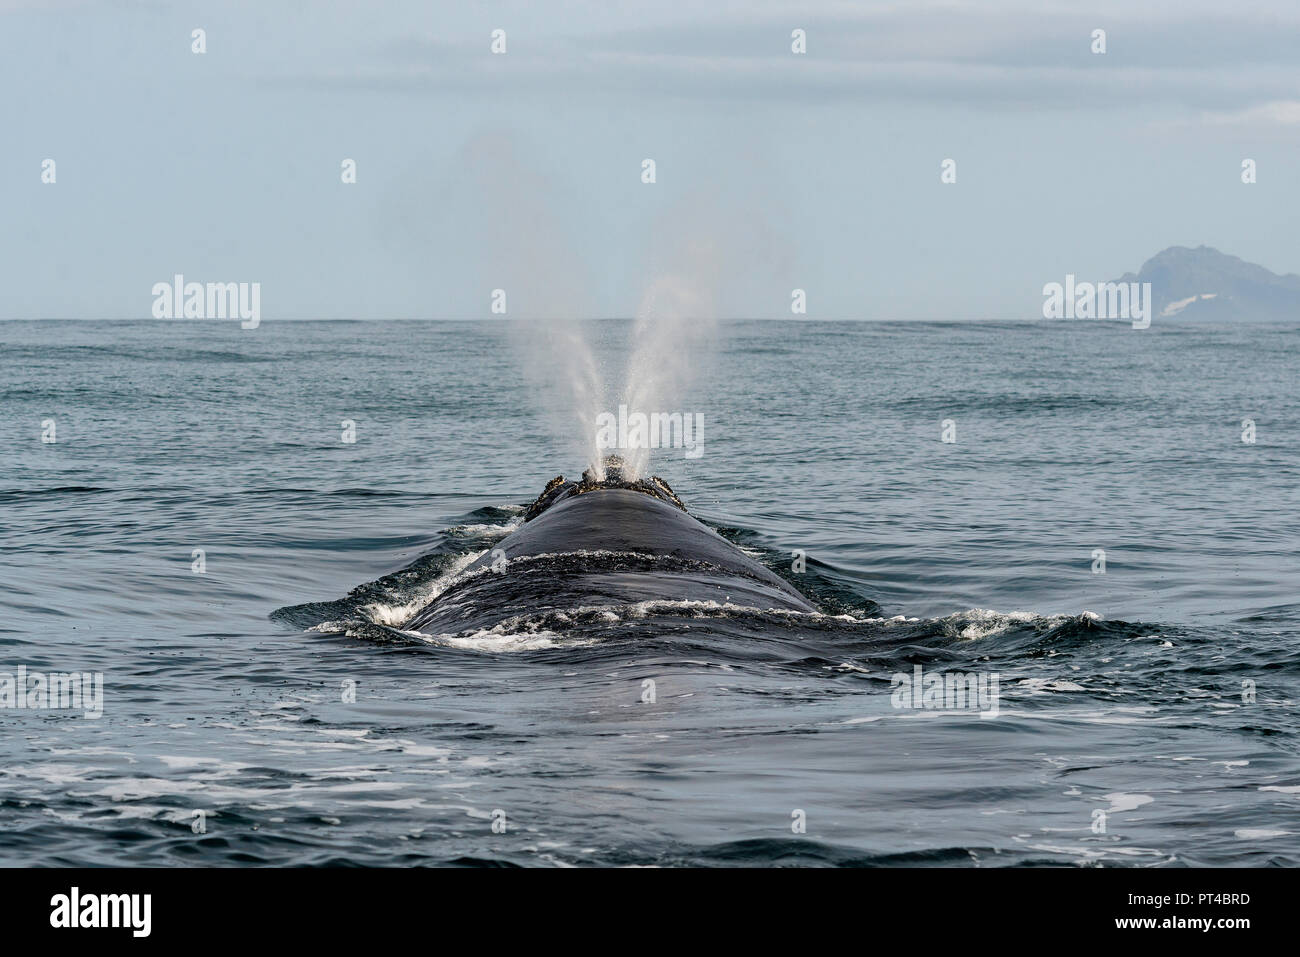 Southern right whale exhaling at the surface. - Stock Image